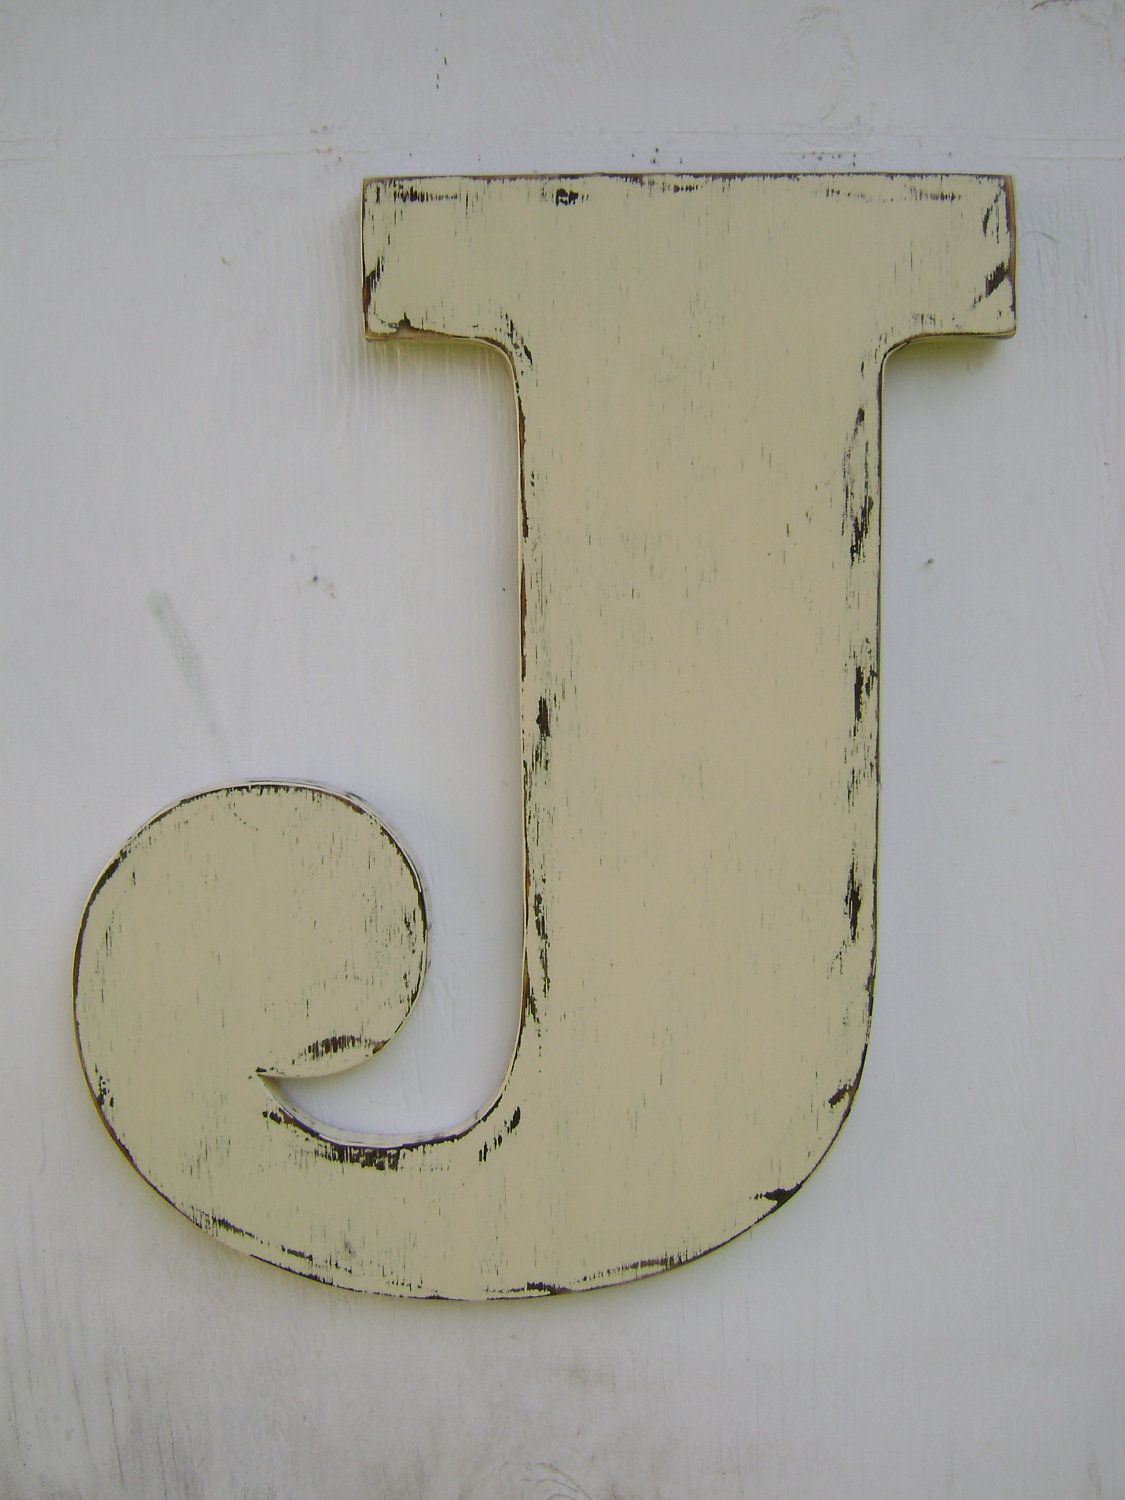 Large Letter J For Wall Rustic Wall Hanging Decor Home Decor Nursery Decor Baby Shower